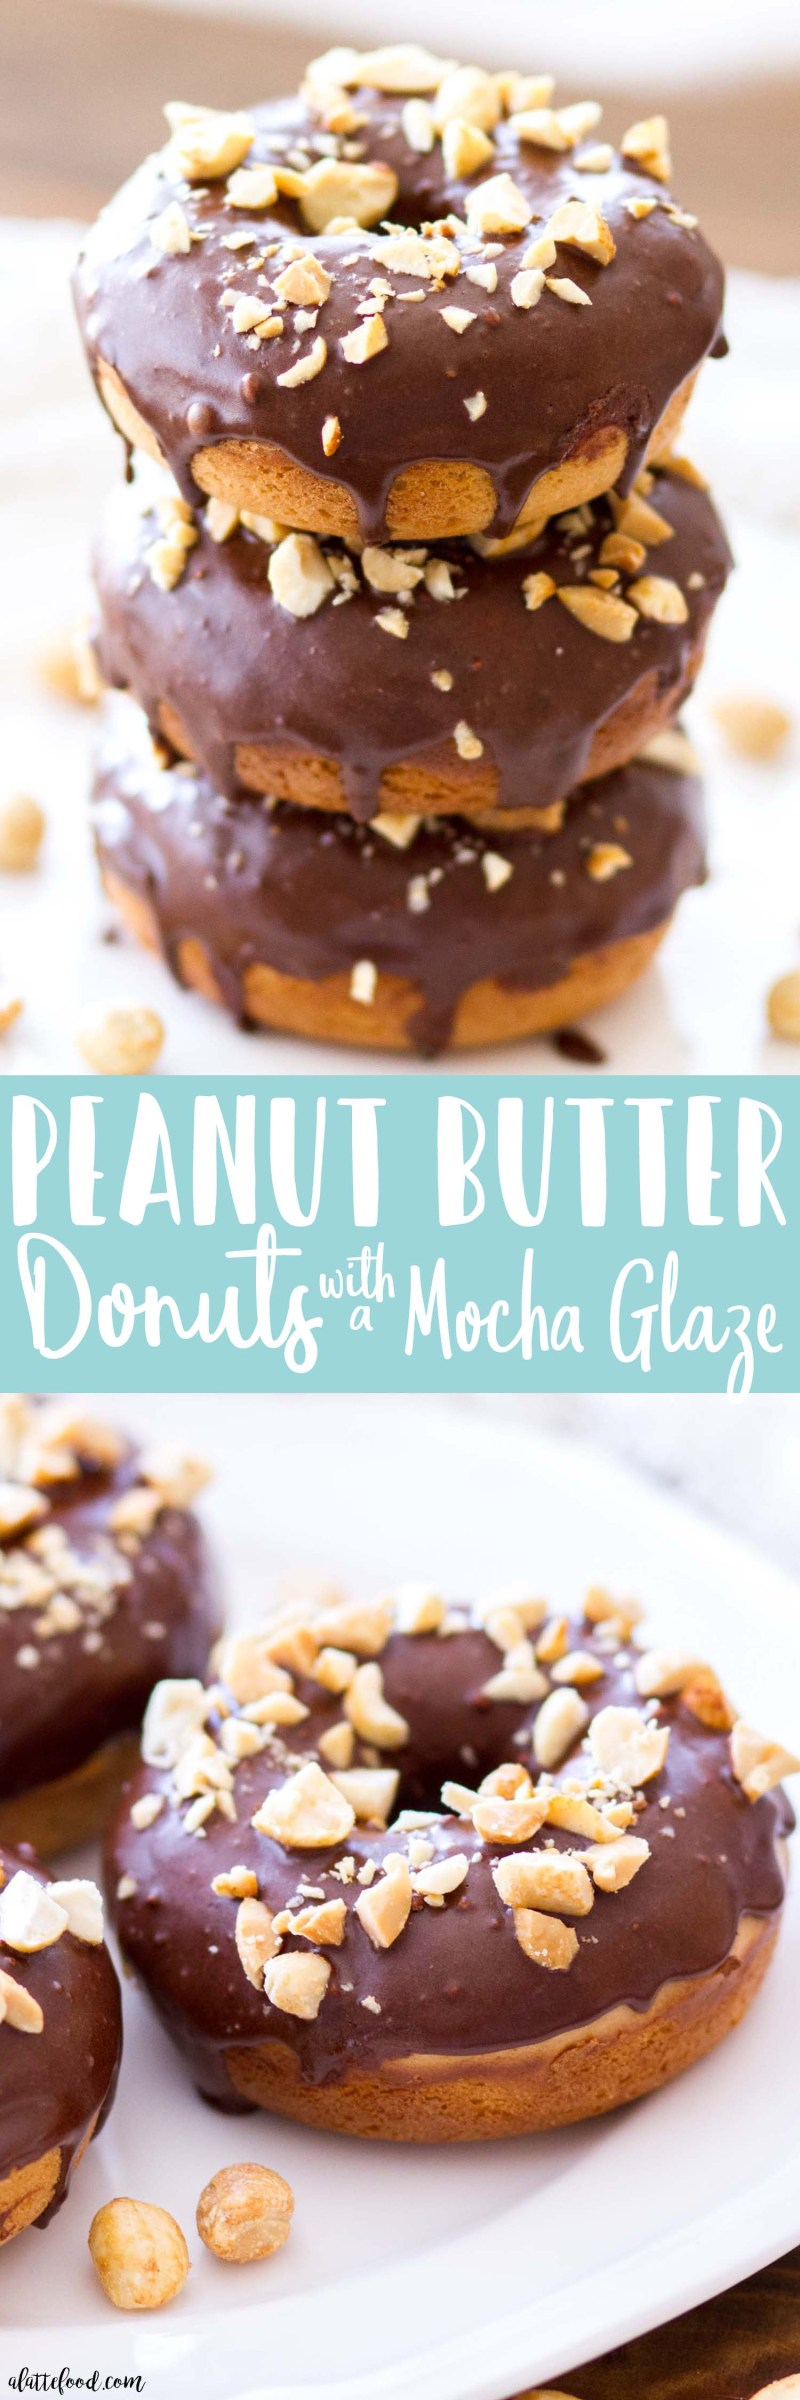 These homemade baked Peanut Butter Donuts are topped with a sweet Mocha Glaze! These homemade donuts are the perfect fall dessert ordecadent breakfast, and they areespecially perfect when paired with a steaming cup of coffee!